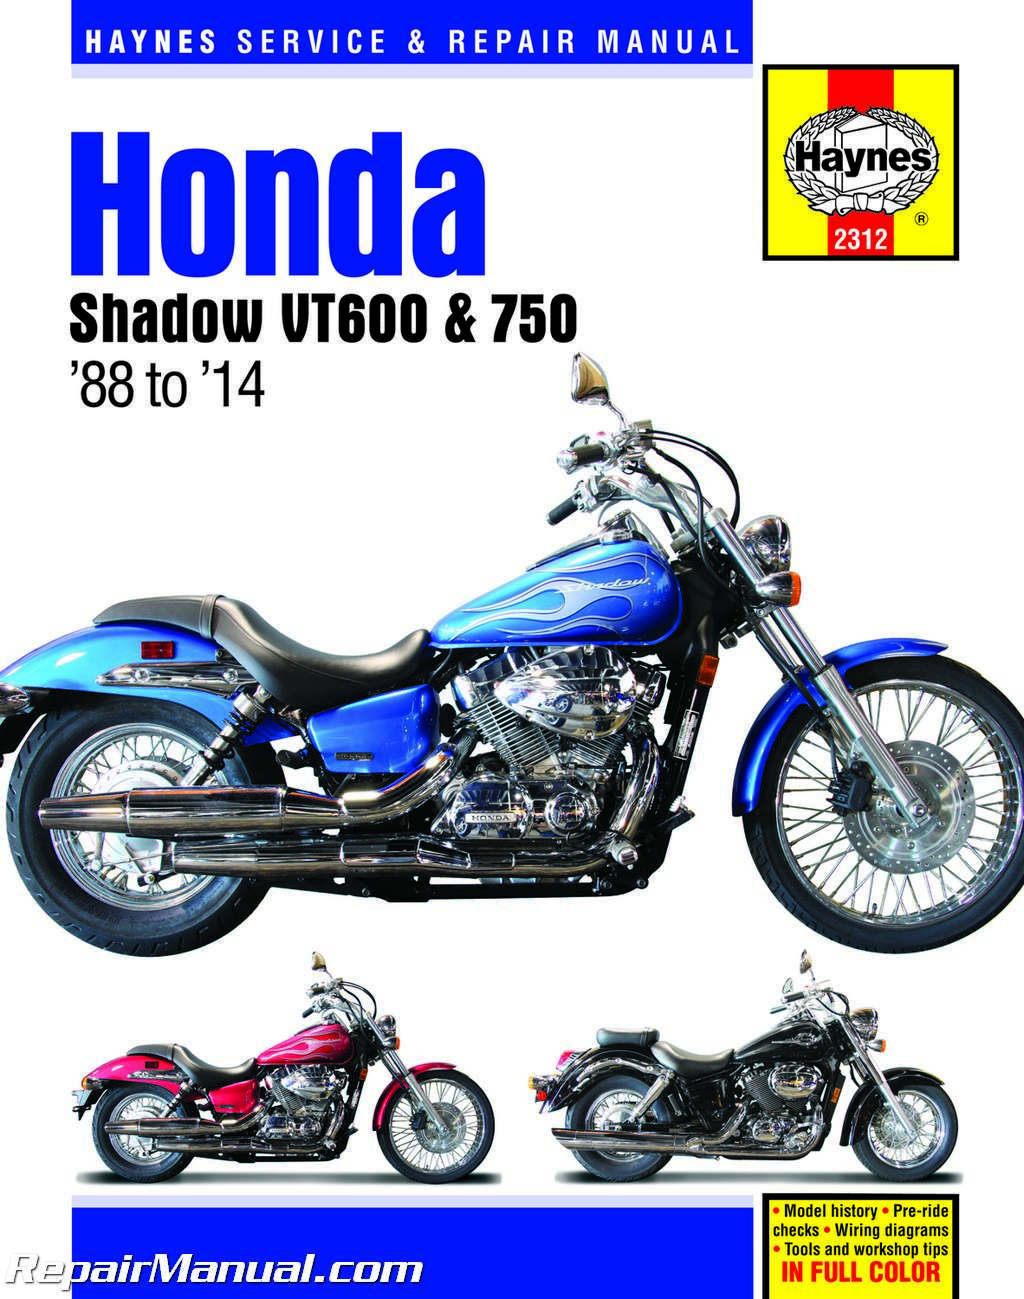 Haynes Honda Shadow Repair Manual 2312 Hm2312 Ebay 1984 700 Wiring Diagram 1988 2014 Vt600 Vt750 Motorcycle H2312